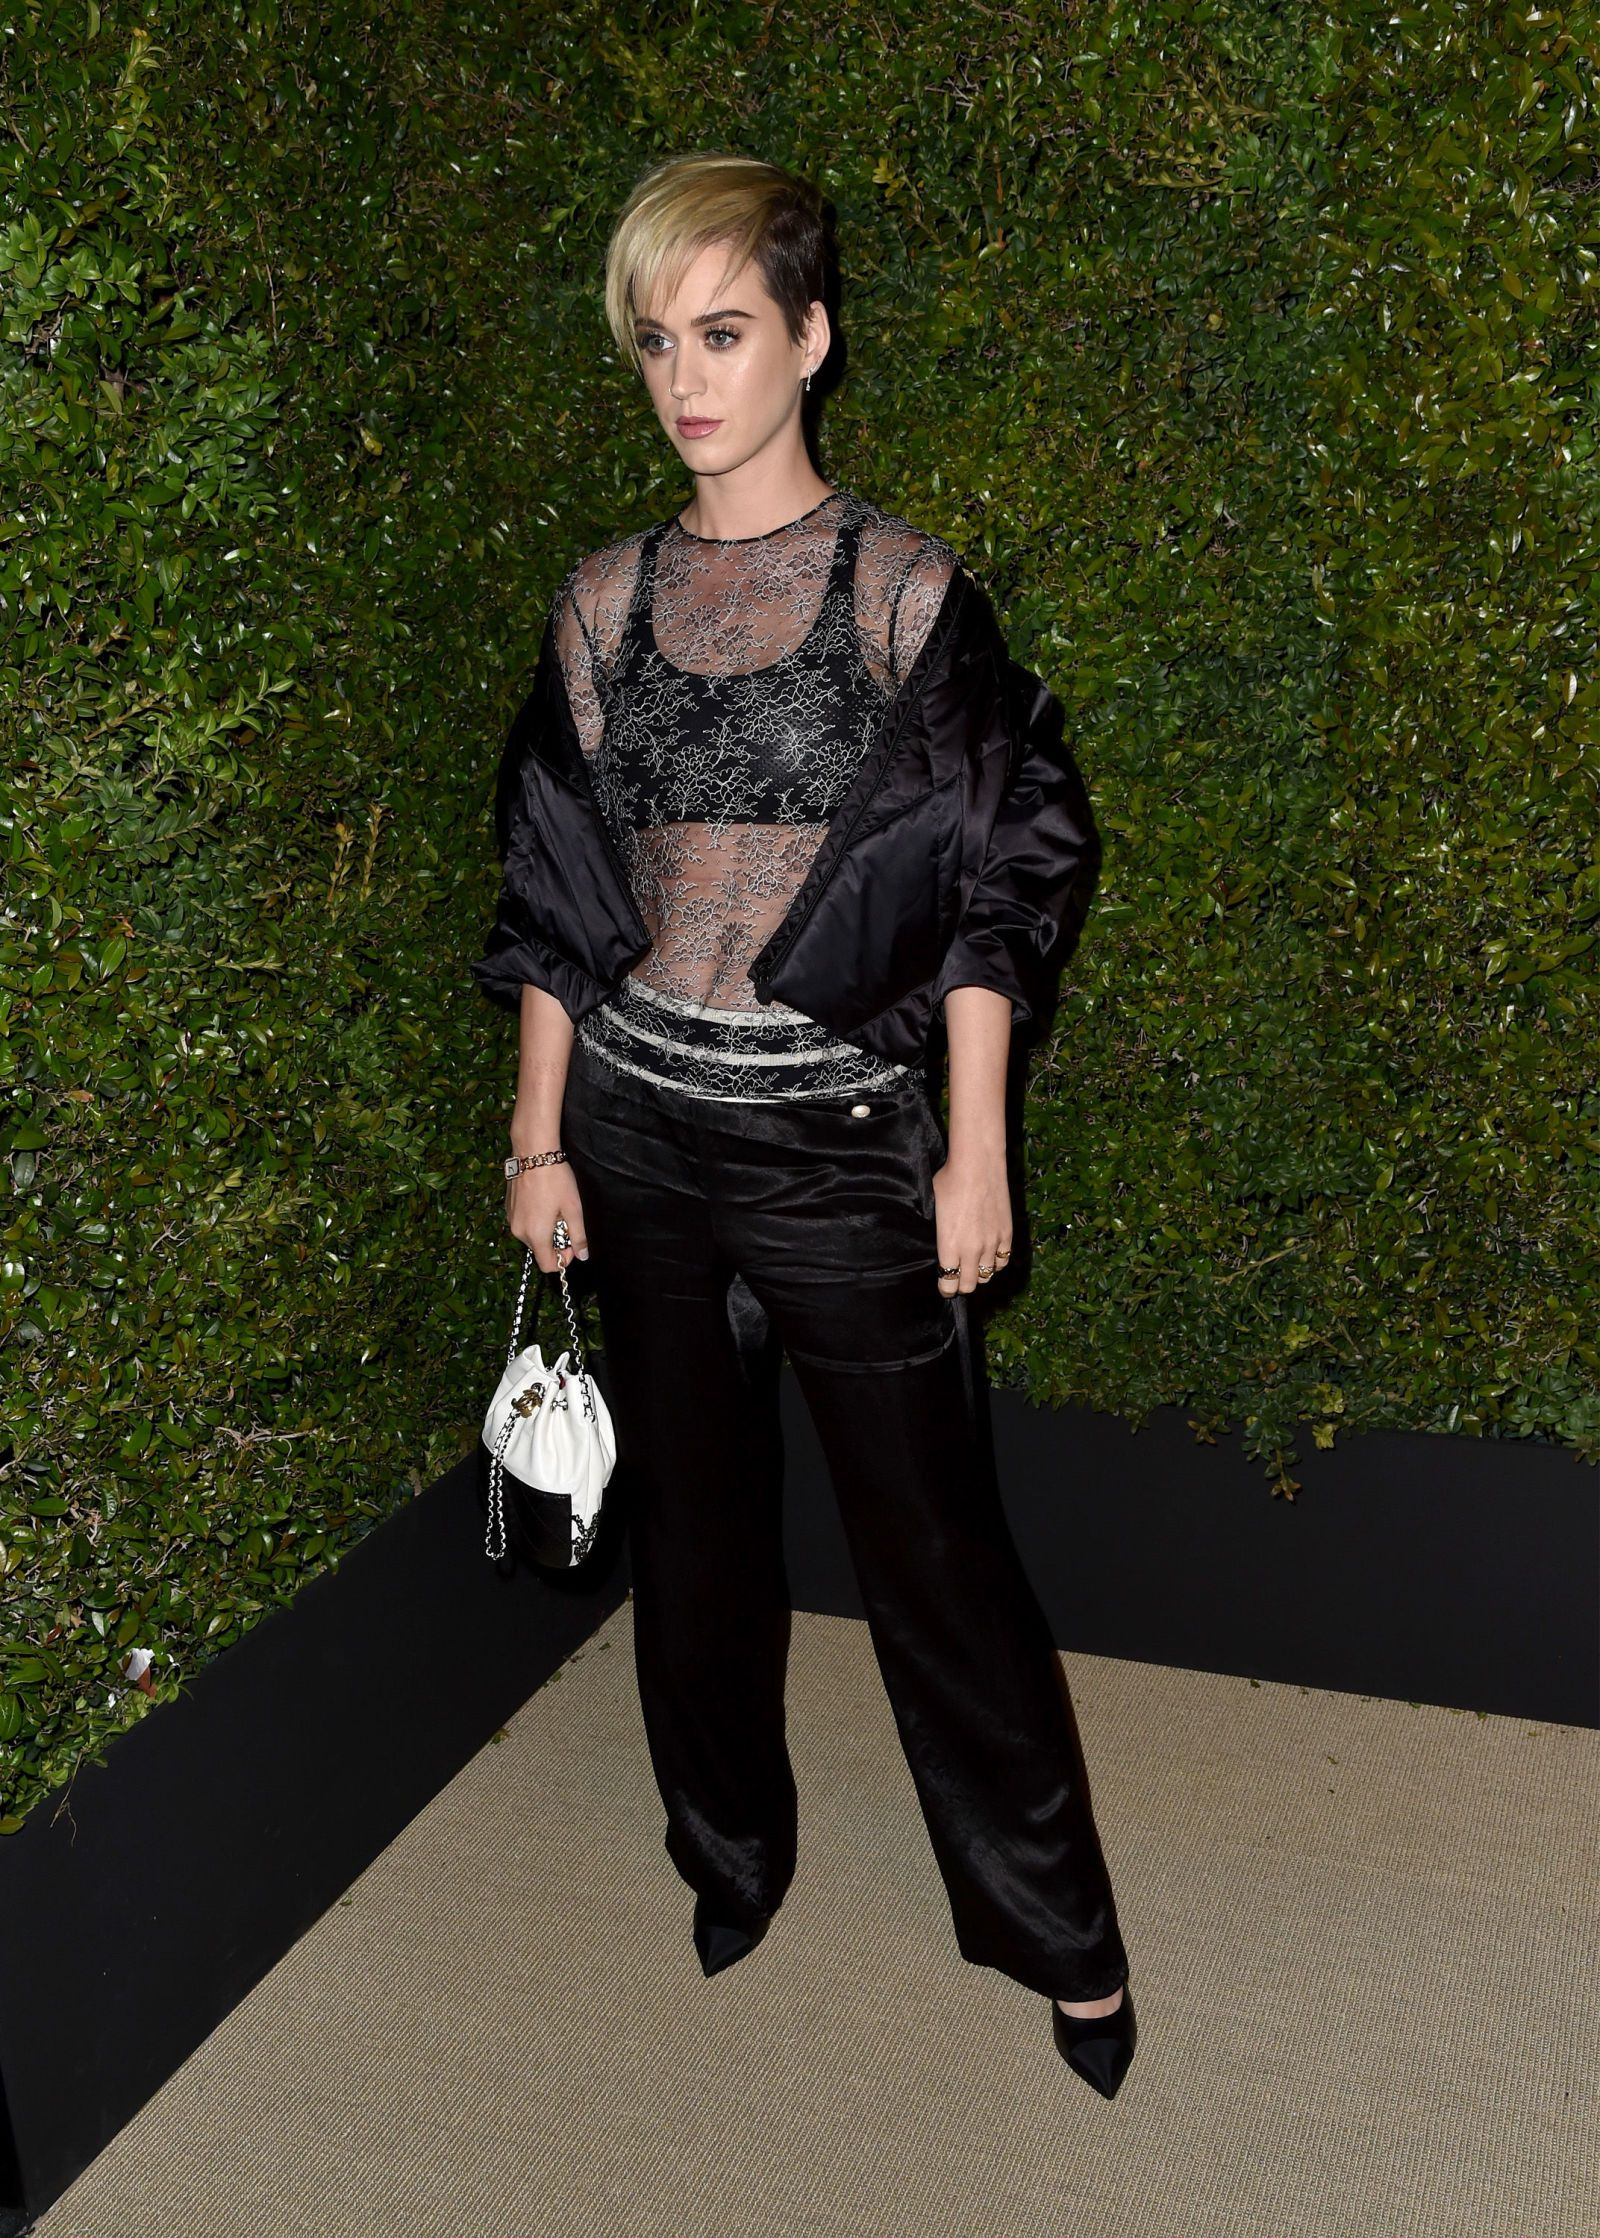 Katy Perry rocked a chic sports bra, sheet shirt and her cropped cut at the Chanel dinner party.